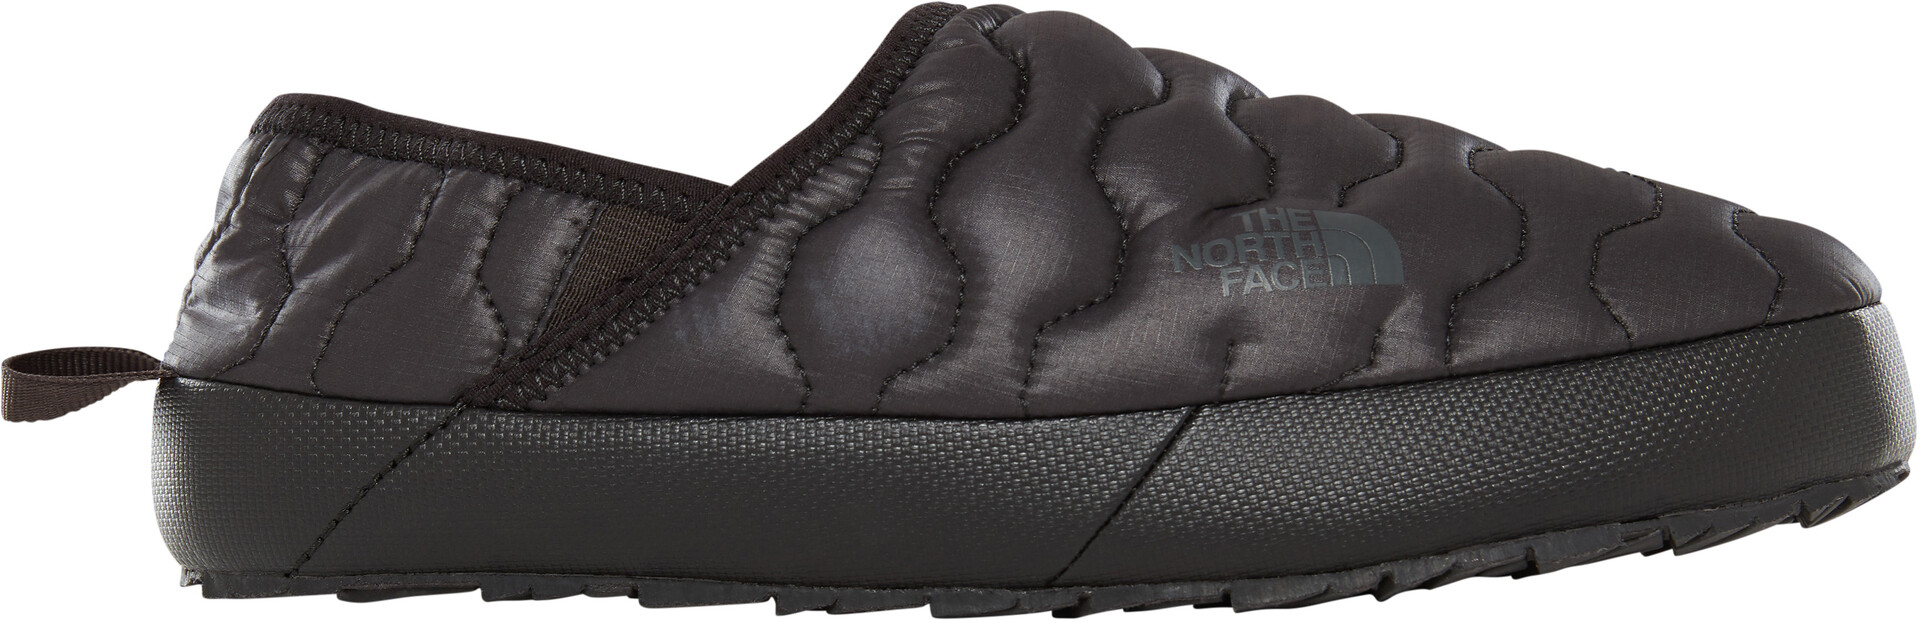 Traction The Chaussons Thermoball Femme North Noir Mule Face Iv qxq7vz1p